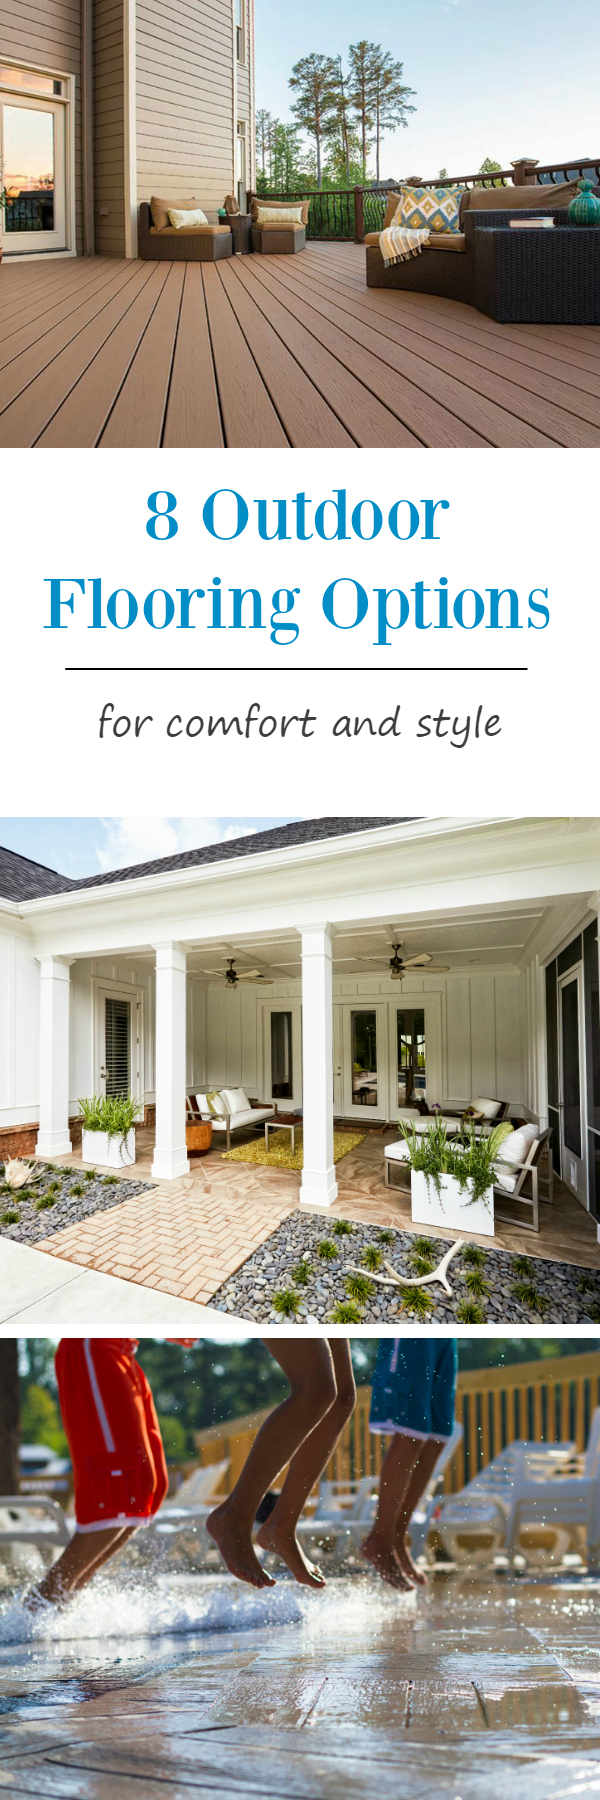 8 Outdoor Flooring Options for Style & Comfort: Find the perfect outdoor flooring option for your location, style and budget.